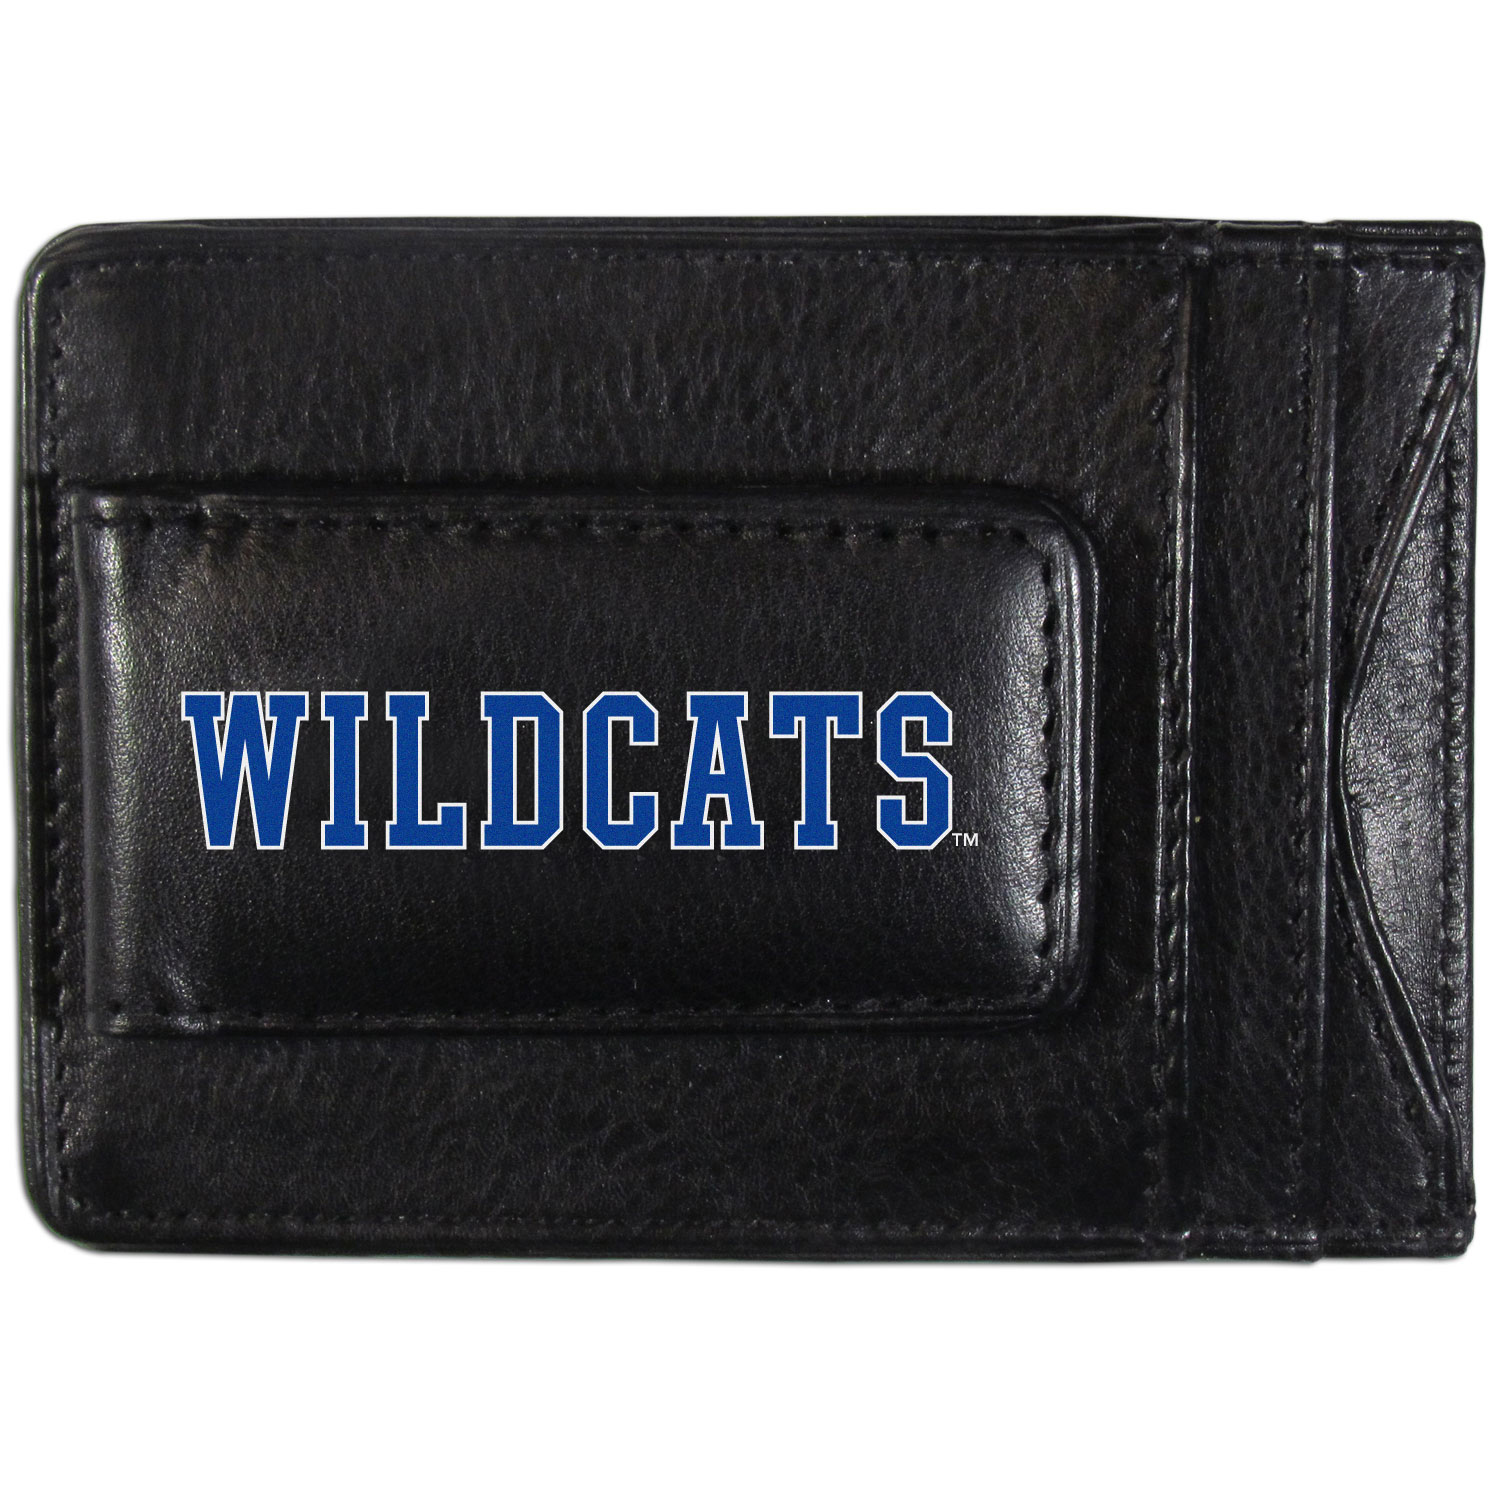 Kentucky Wildcats Logo Leather Cash and Cardholder - This super slim leather wallet lets you have all the benefits of a money clip while keeping the organization of a wallet. On one side of this front pocket wallet there is a strong, magnetic money clip to keep your cash easily accessible and the?Kentucky Wildcats team logo on the front. The versatile men's accessory is a perfect addition to your fan apparel.